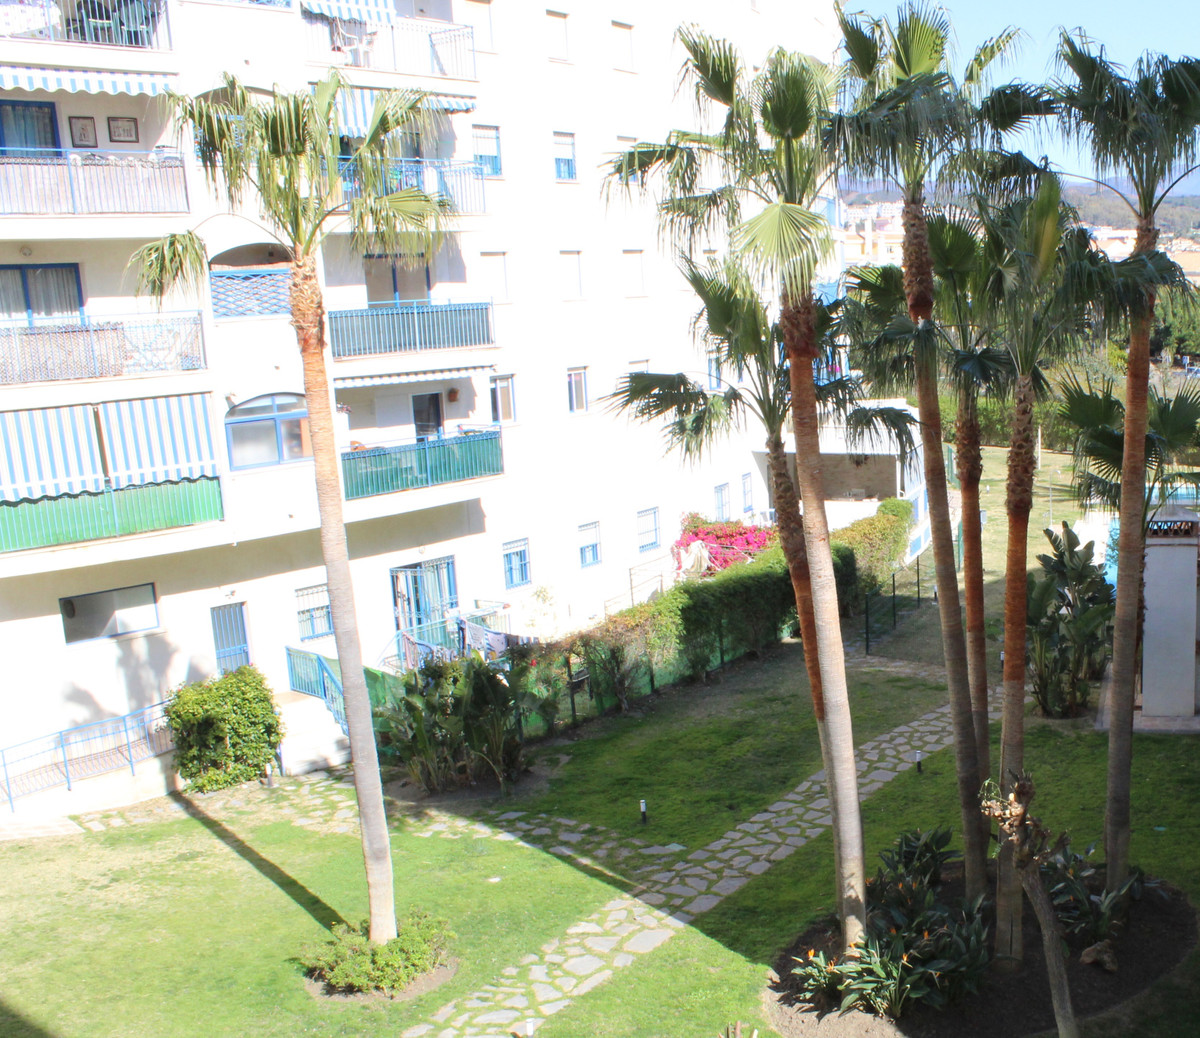 2 bedroom apartment in Estepona close to the port, town, schools and shops. Large communal pool and ,Spain